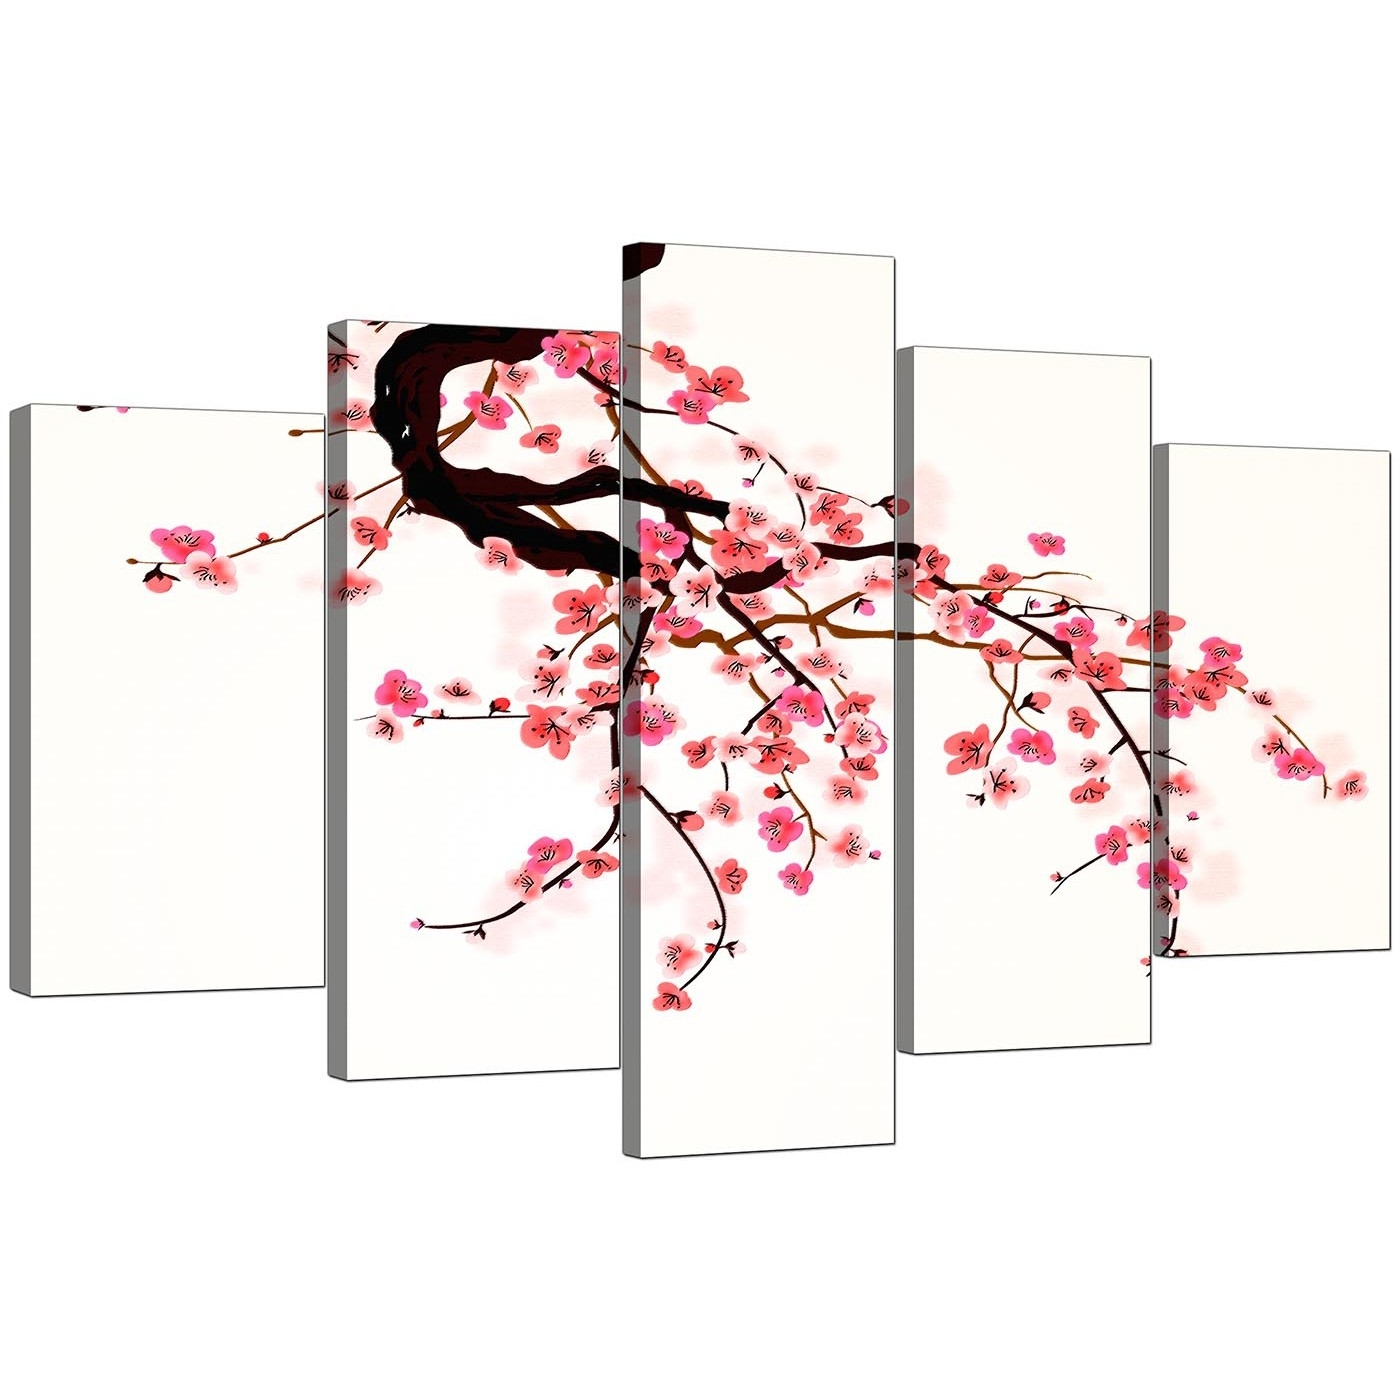 Extra Large Flowers Canvas Wall Art Set Of 5 In Pink With Regard To 2017 Cherry Blossom Wall Art (View 13 of 20)